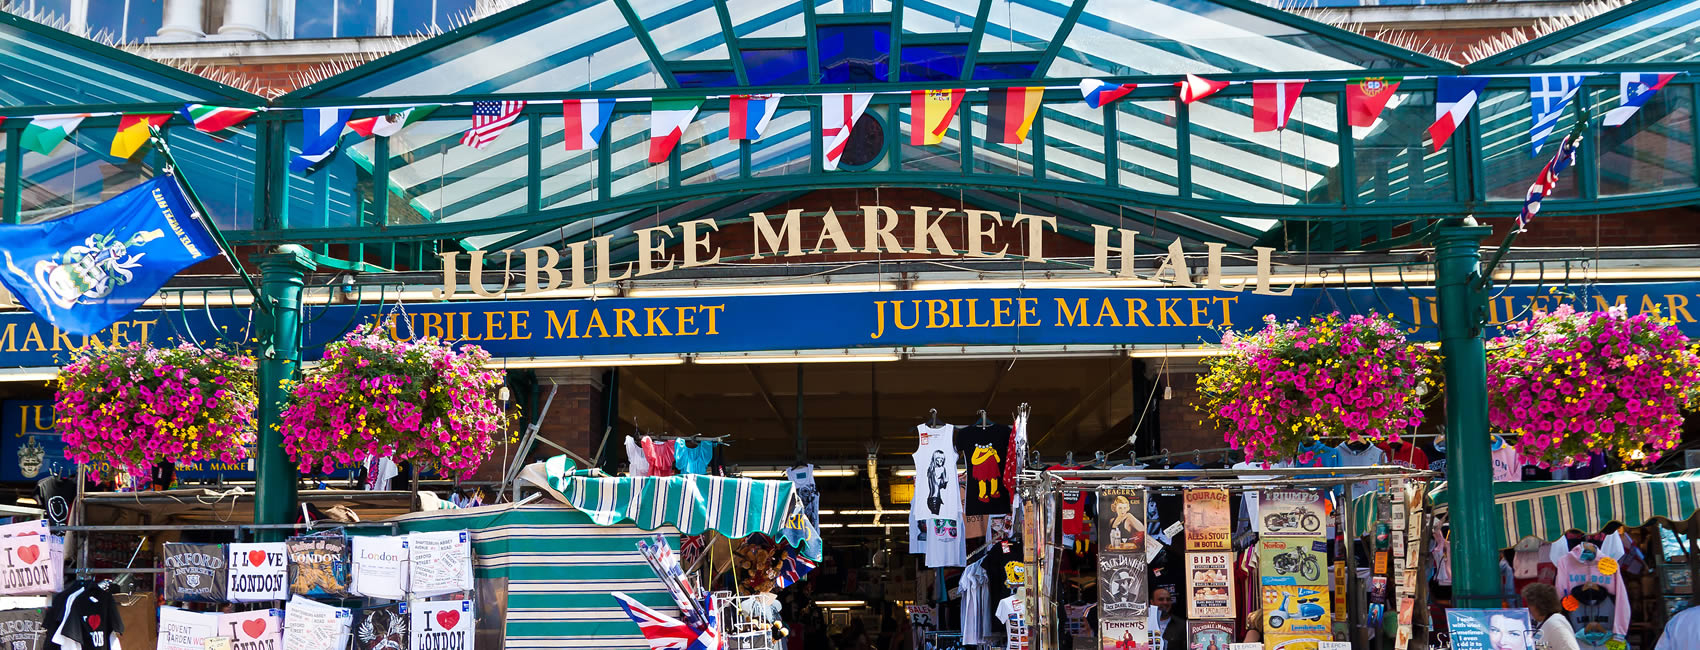 Covent Garden Jubilee Market Hall